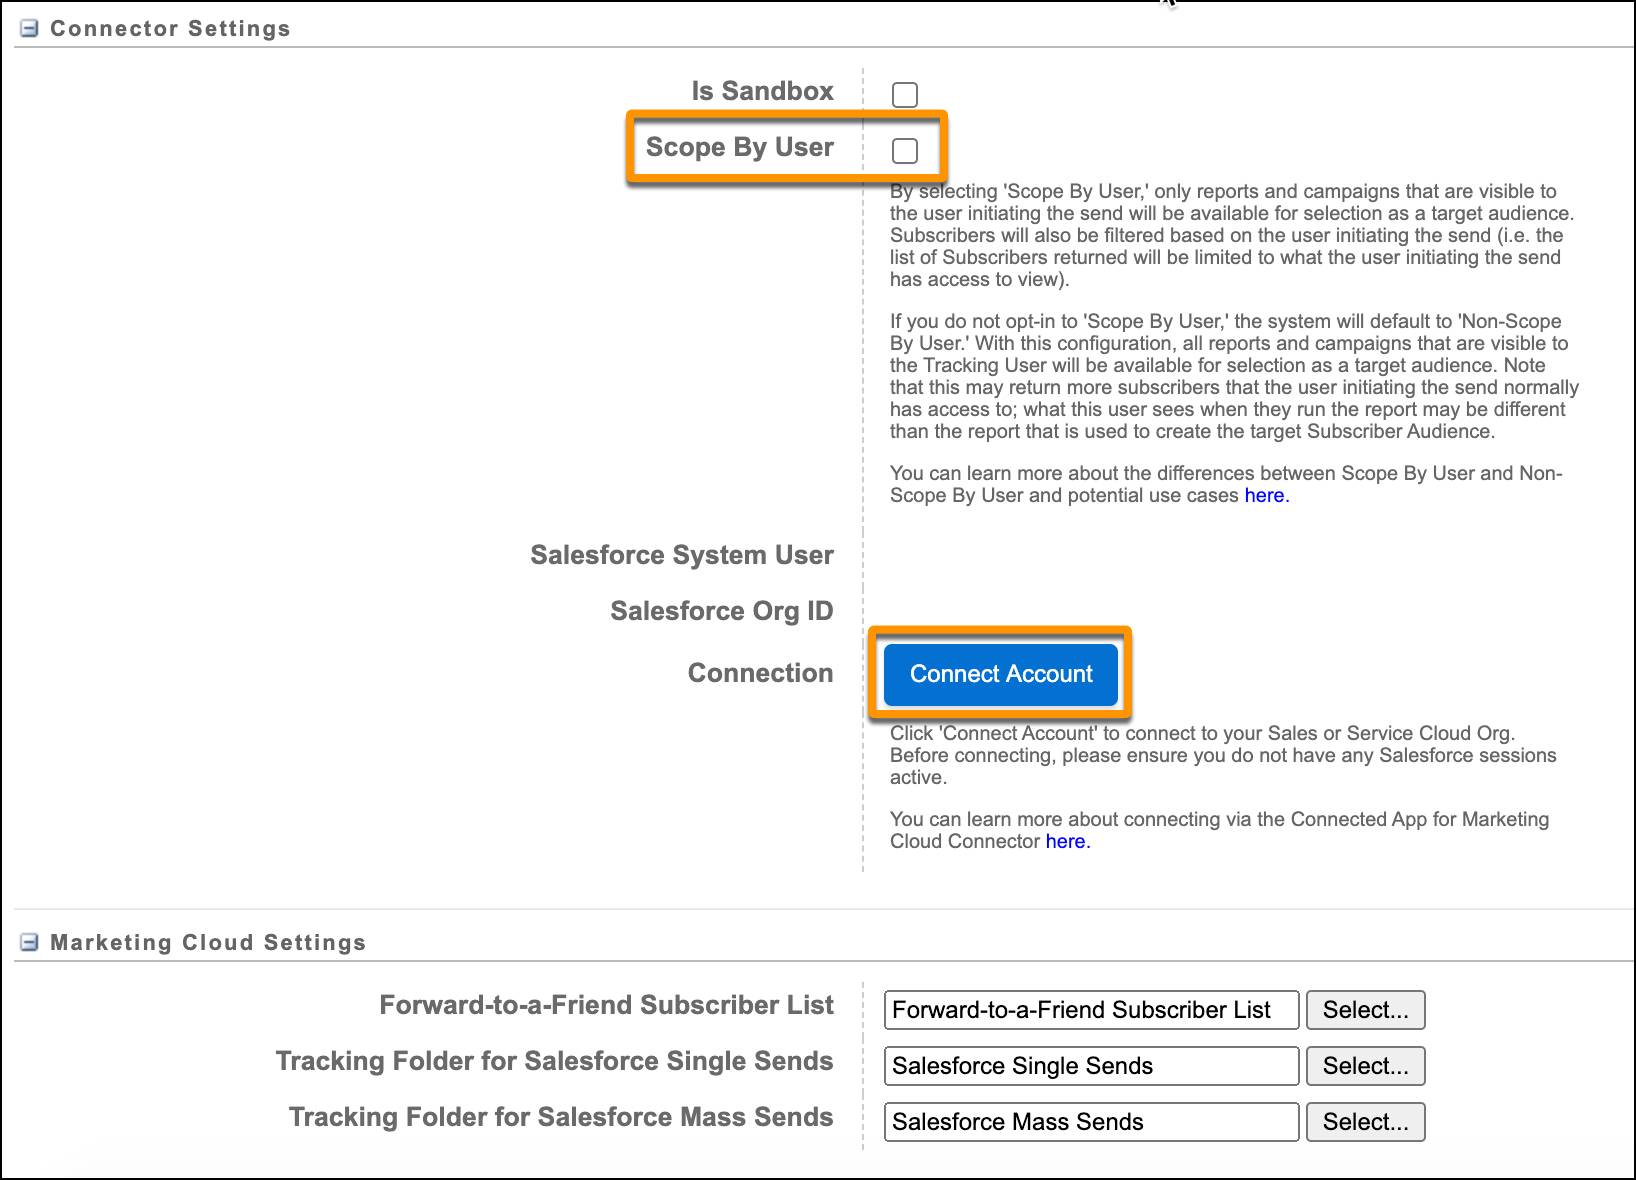 Salesforce Integration Setup screen in Marketing Cloud with Scope by User and Connect Account circled.